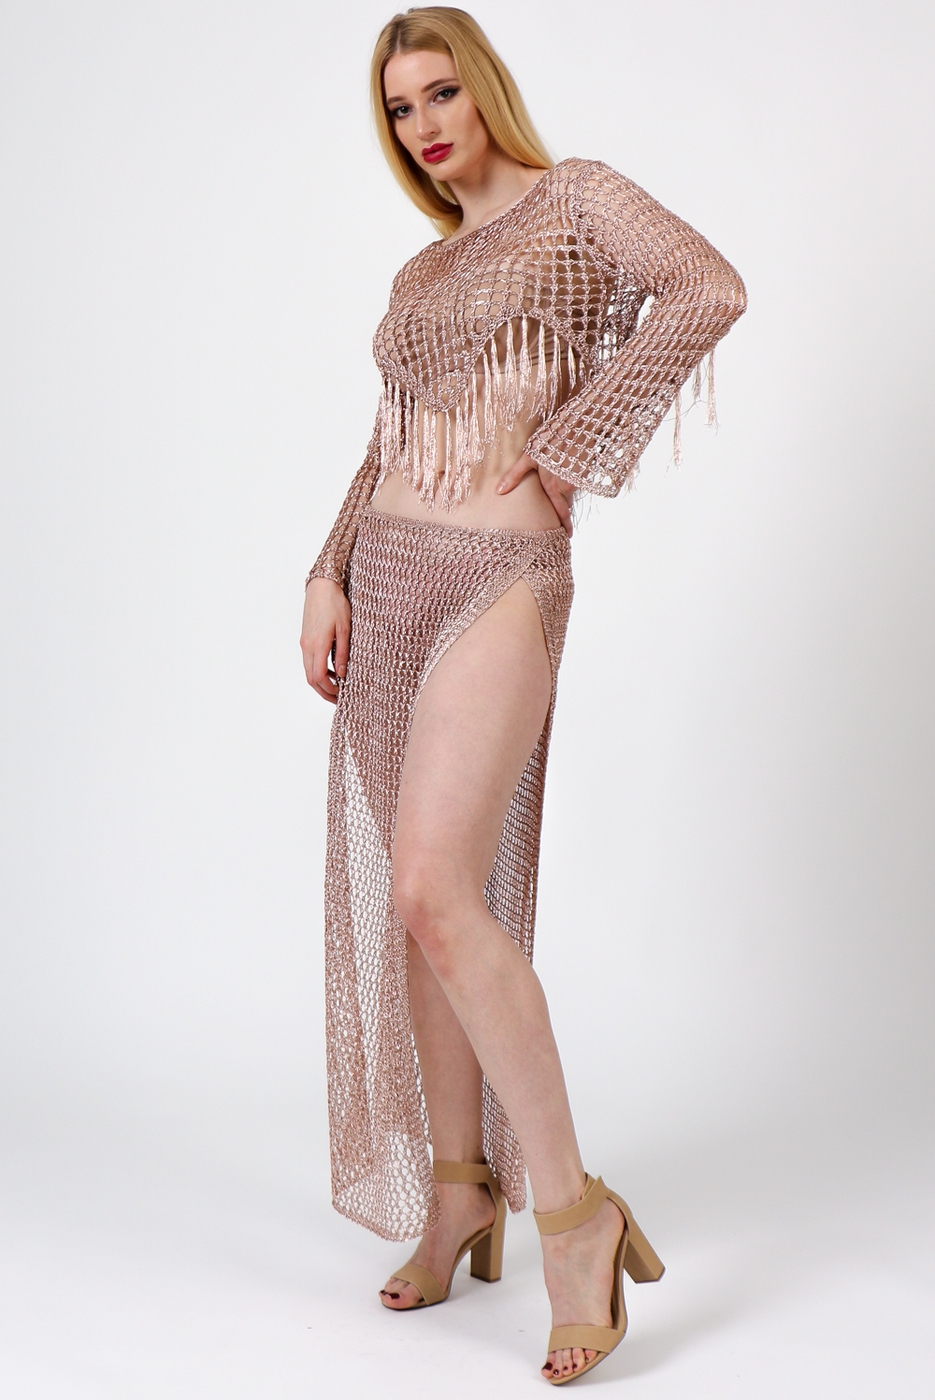 Metallic Fish Net Two Piece Set - orangeshine.com